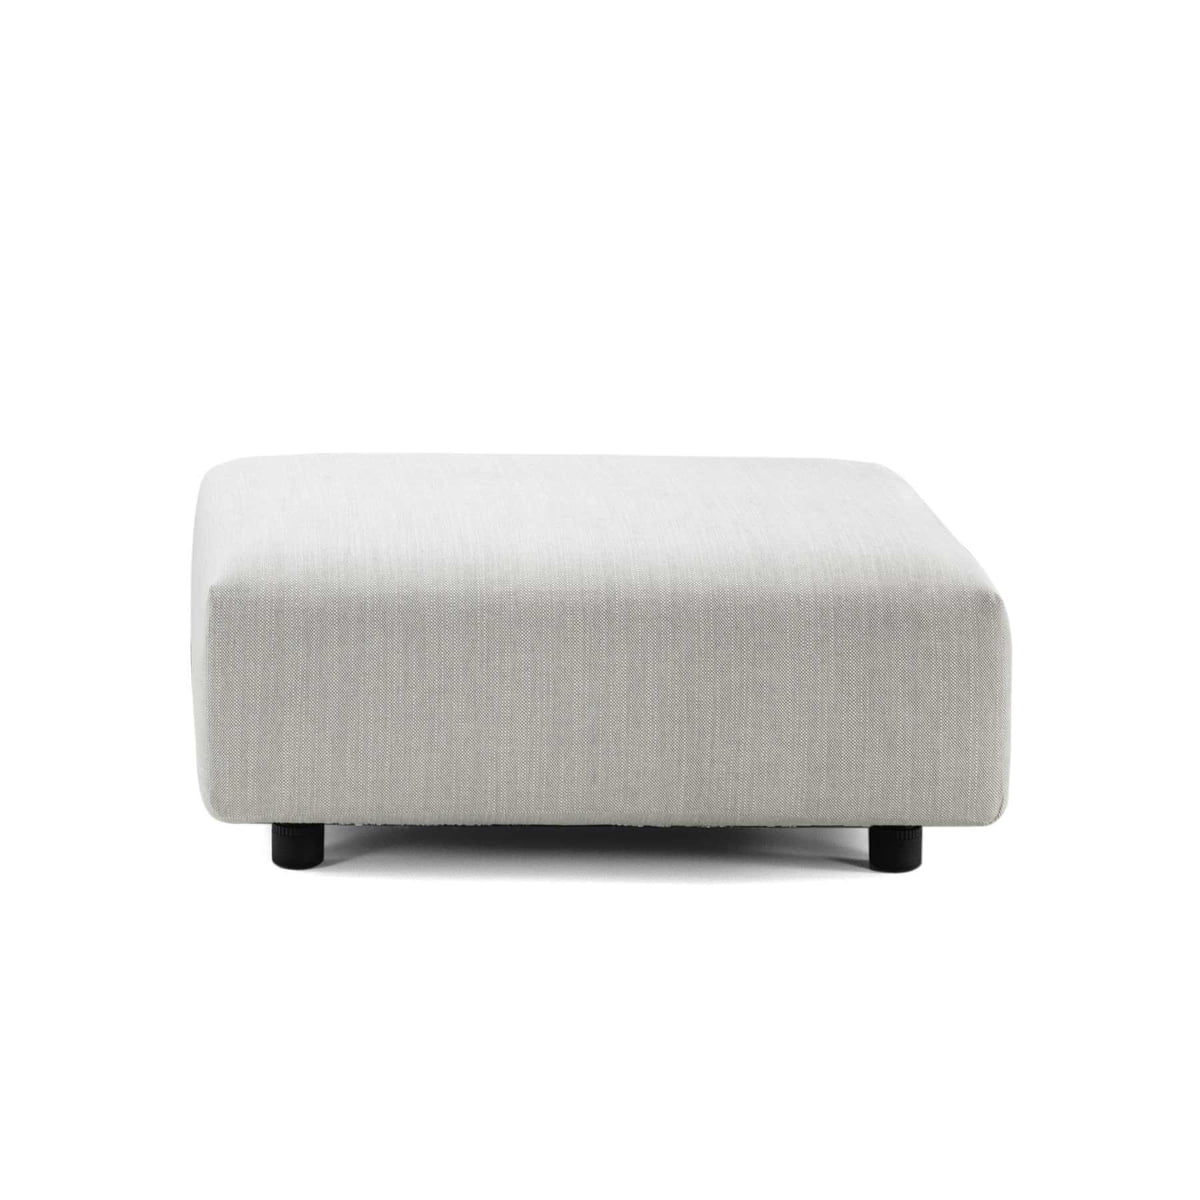 Buy The Soft Modular Ottoman By Vitra